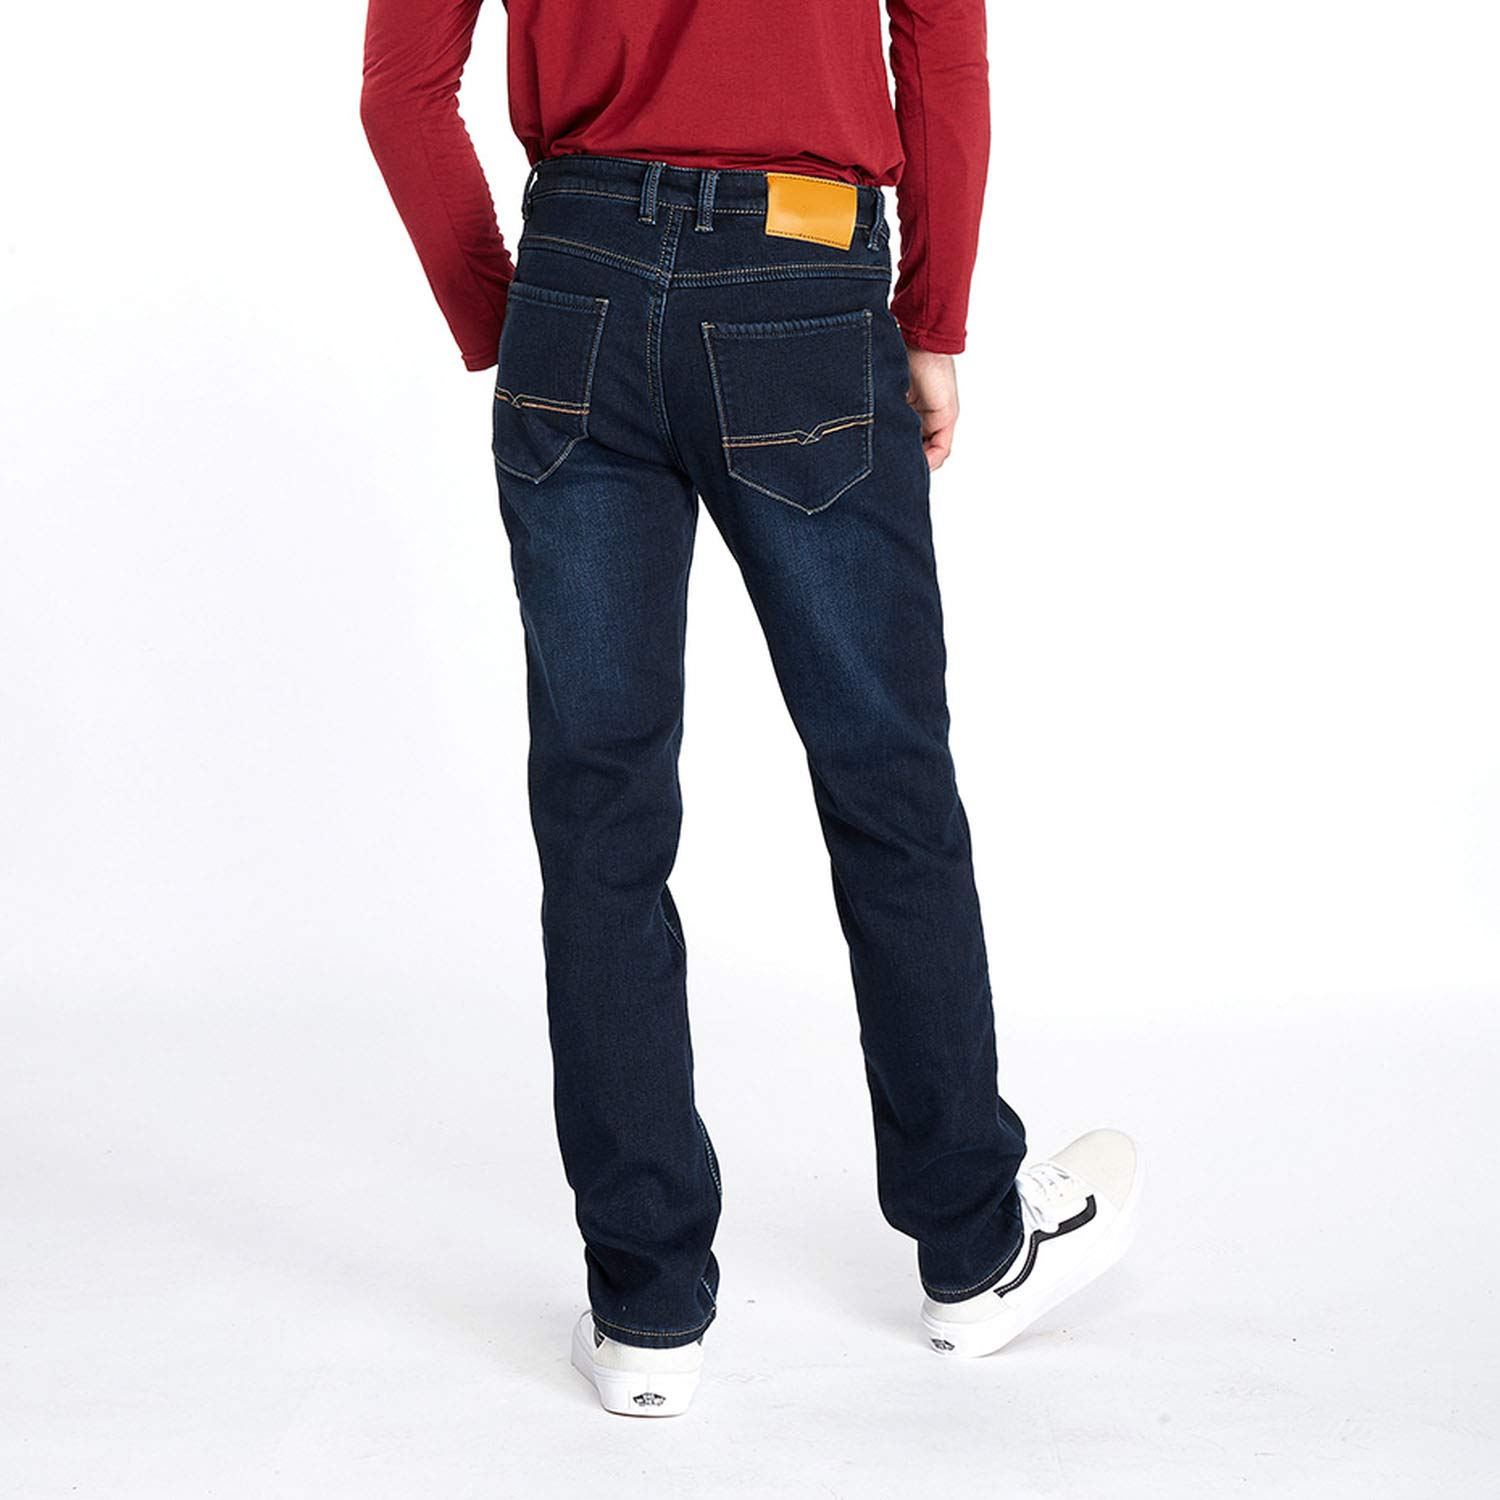 DATAIYANG Mens Winter Fleece Jeans Flannel Lined Stretch Denim Jeans Slim Fit Trousers Pants 42,Blue,30